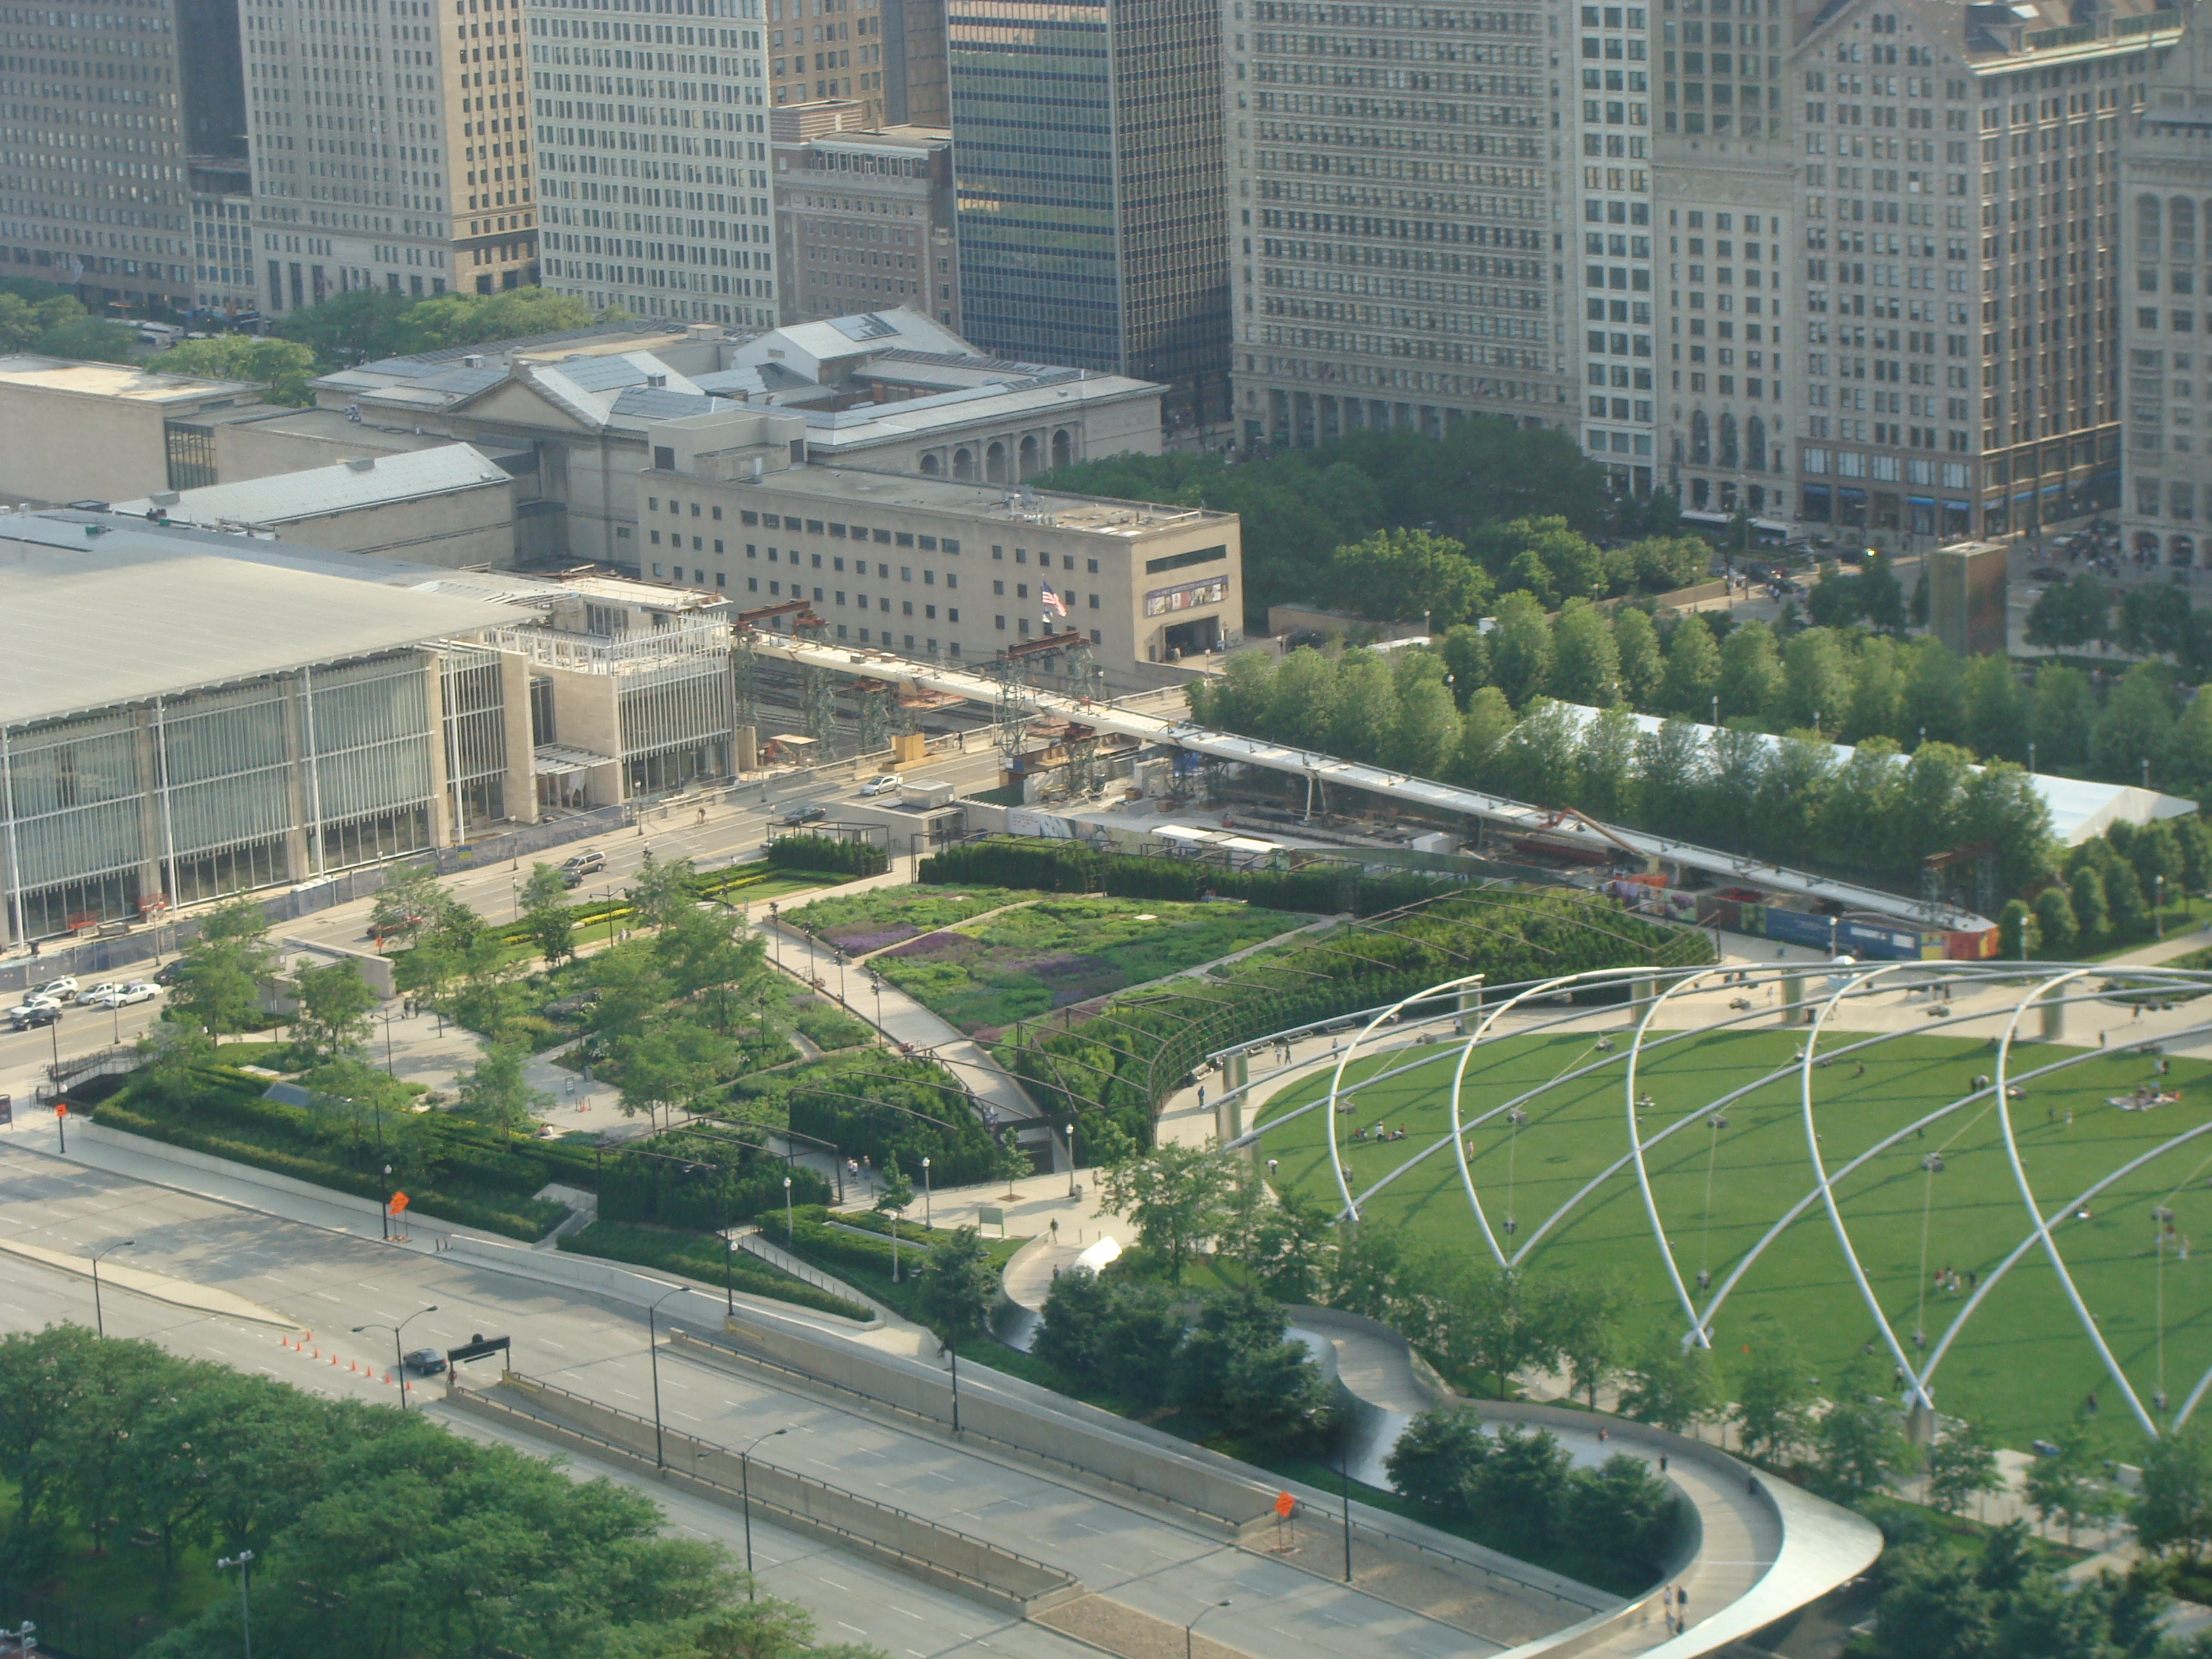 When Millennium Park first opened in 2004